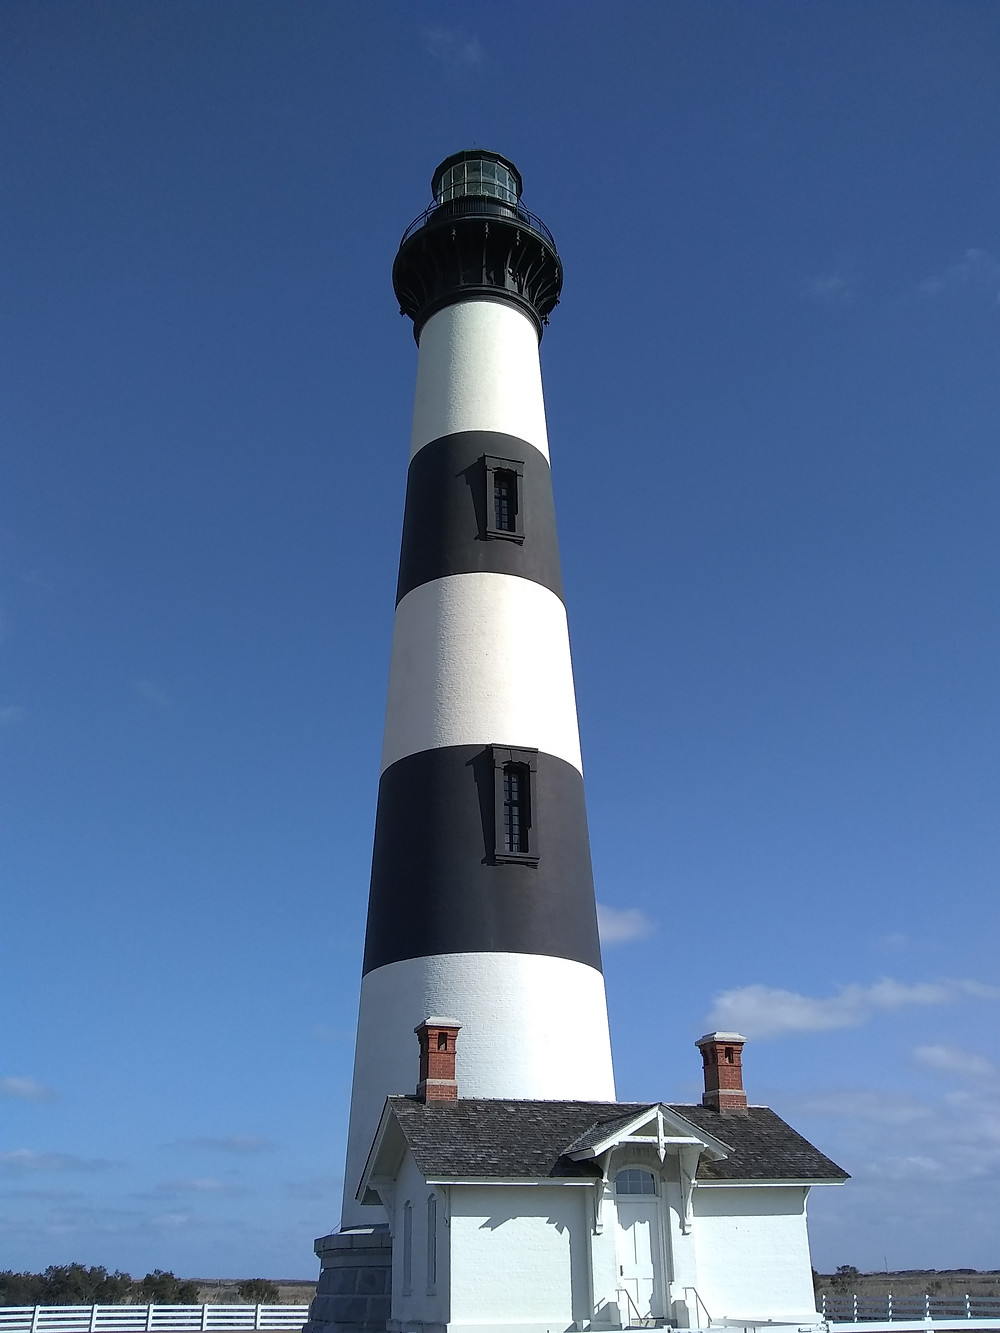 Black-and-white stripped lighthouse against a blue sky